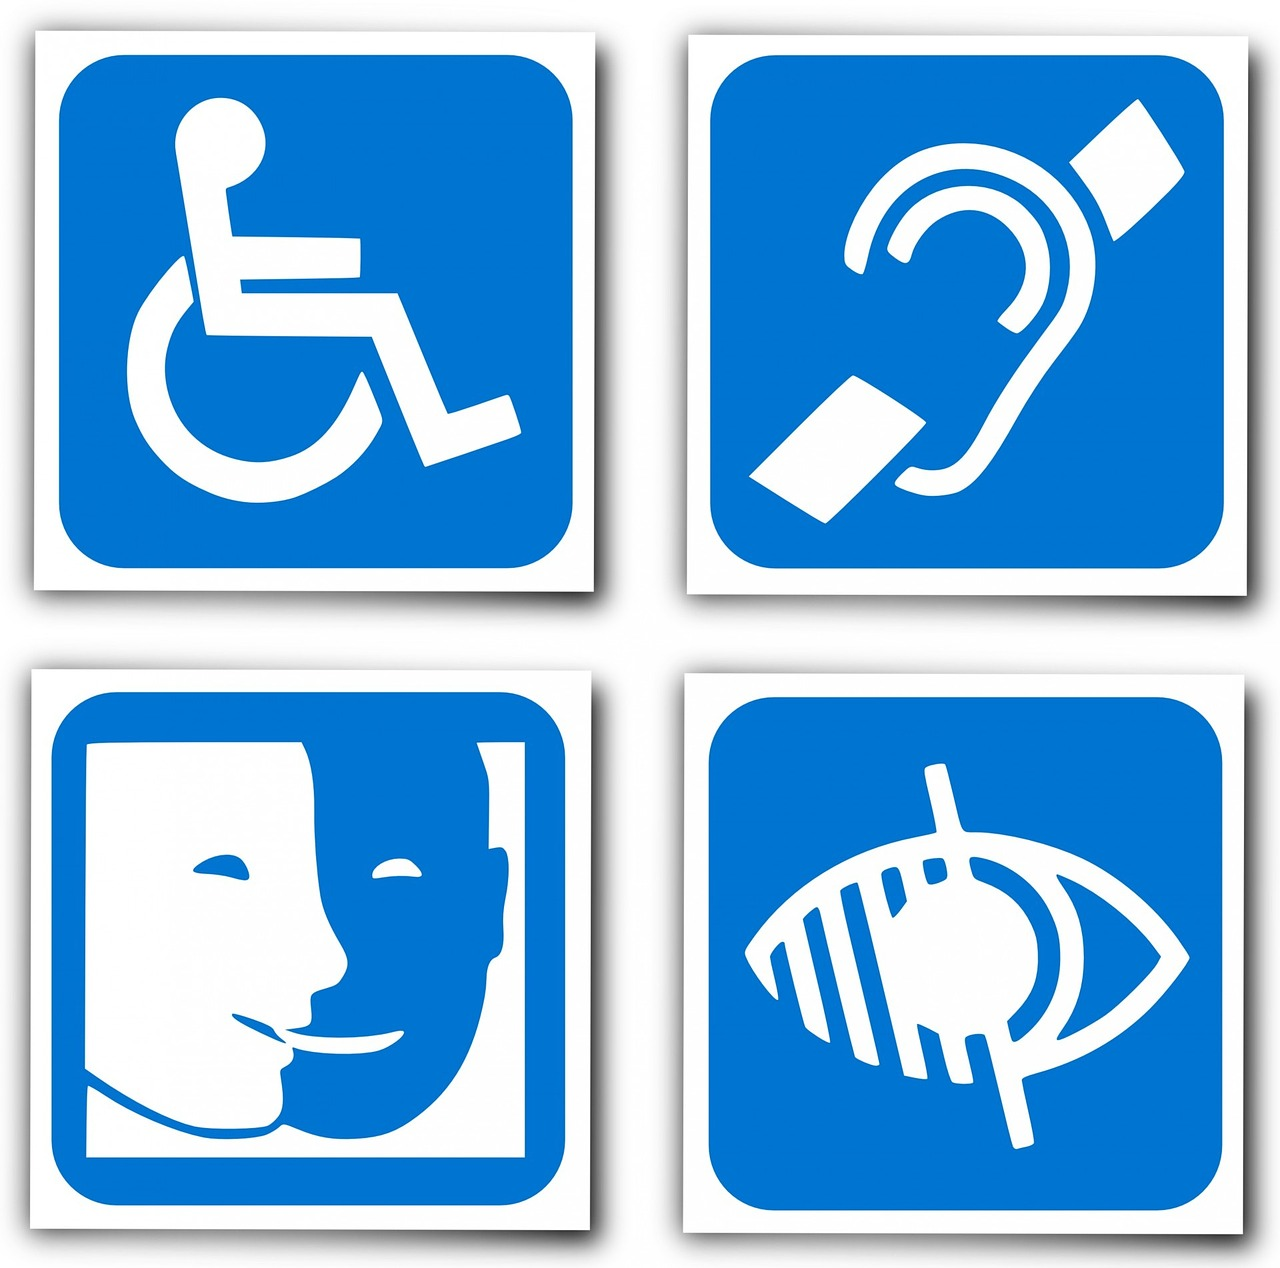 Thinking about accessibility part 1 the innovative instructor four universal signs for disabilities wheelchair access hearing access captioning visual accession buycottarizona Gallery